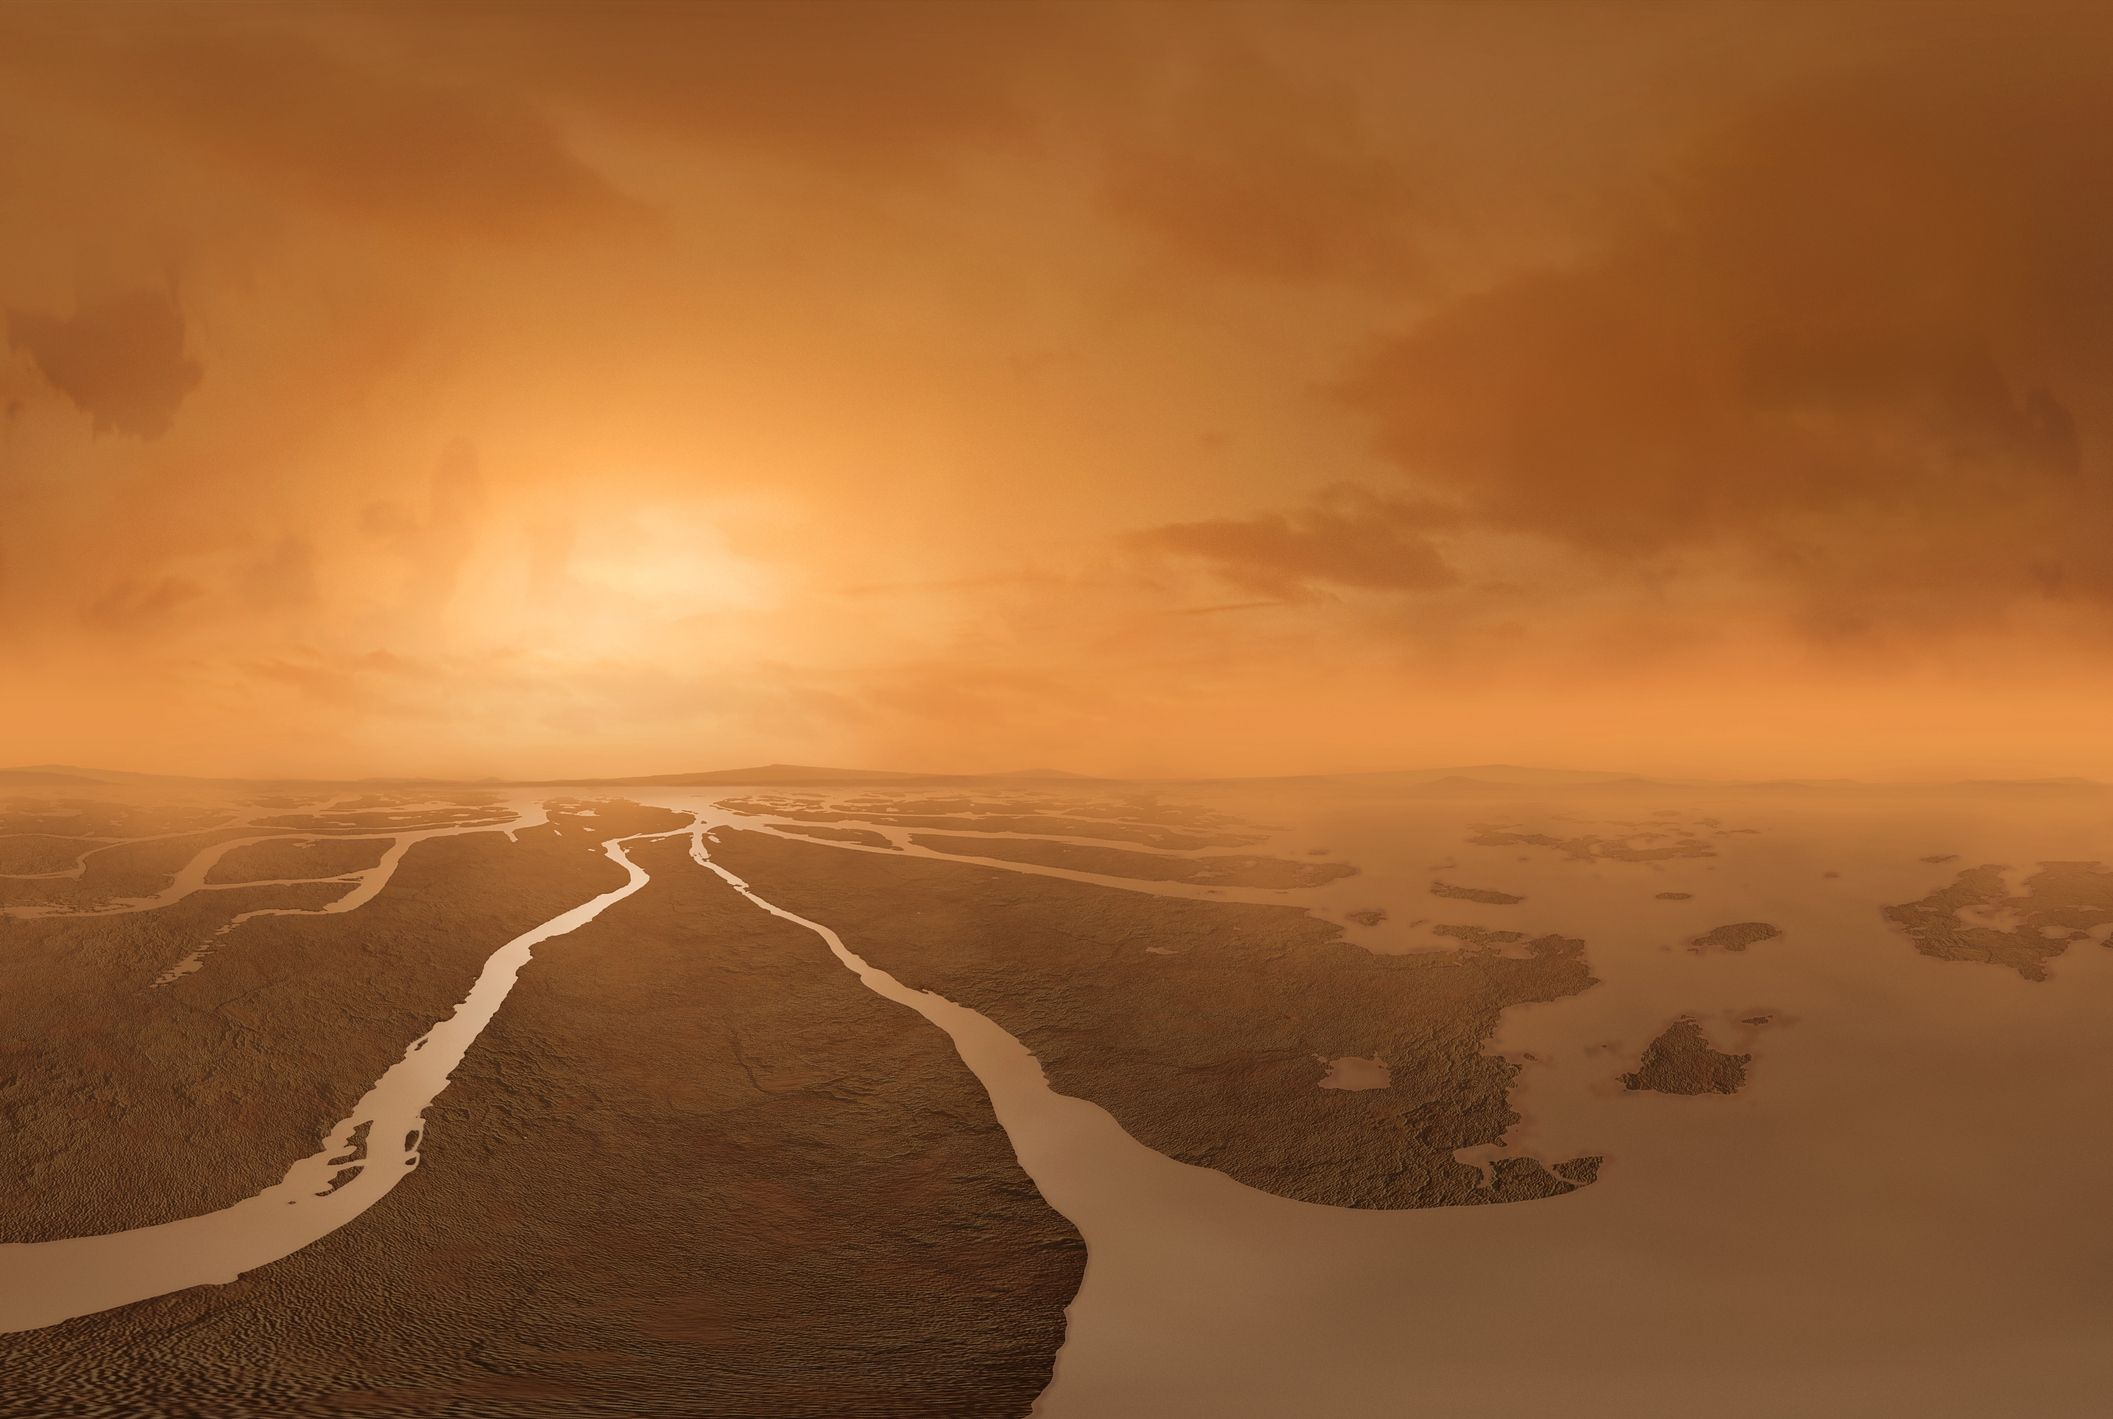 Titan's New Geologic Map Shows Why It's One of the Most Exciting Moons in the Solar System